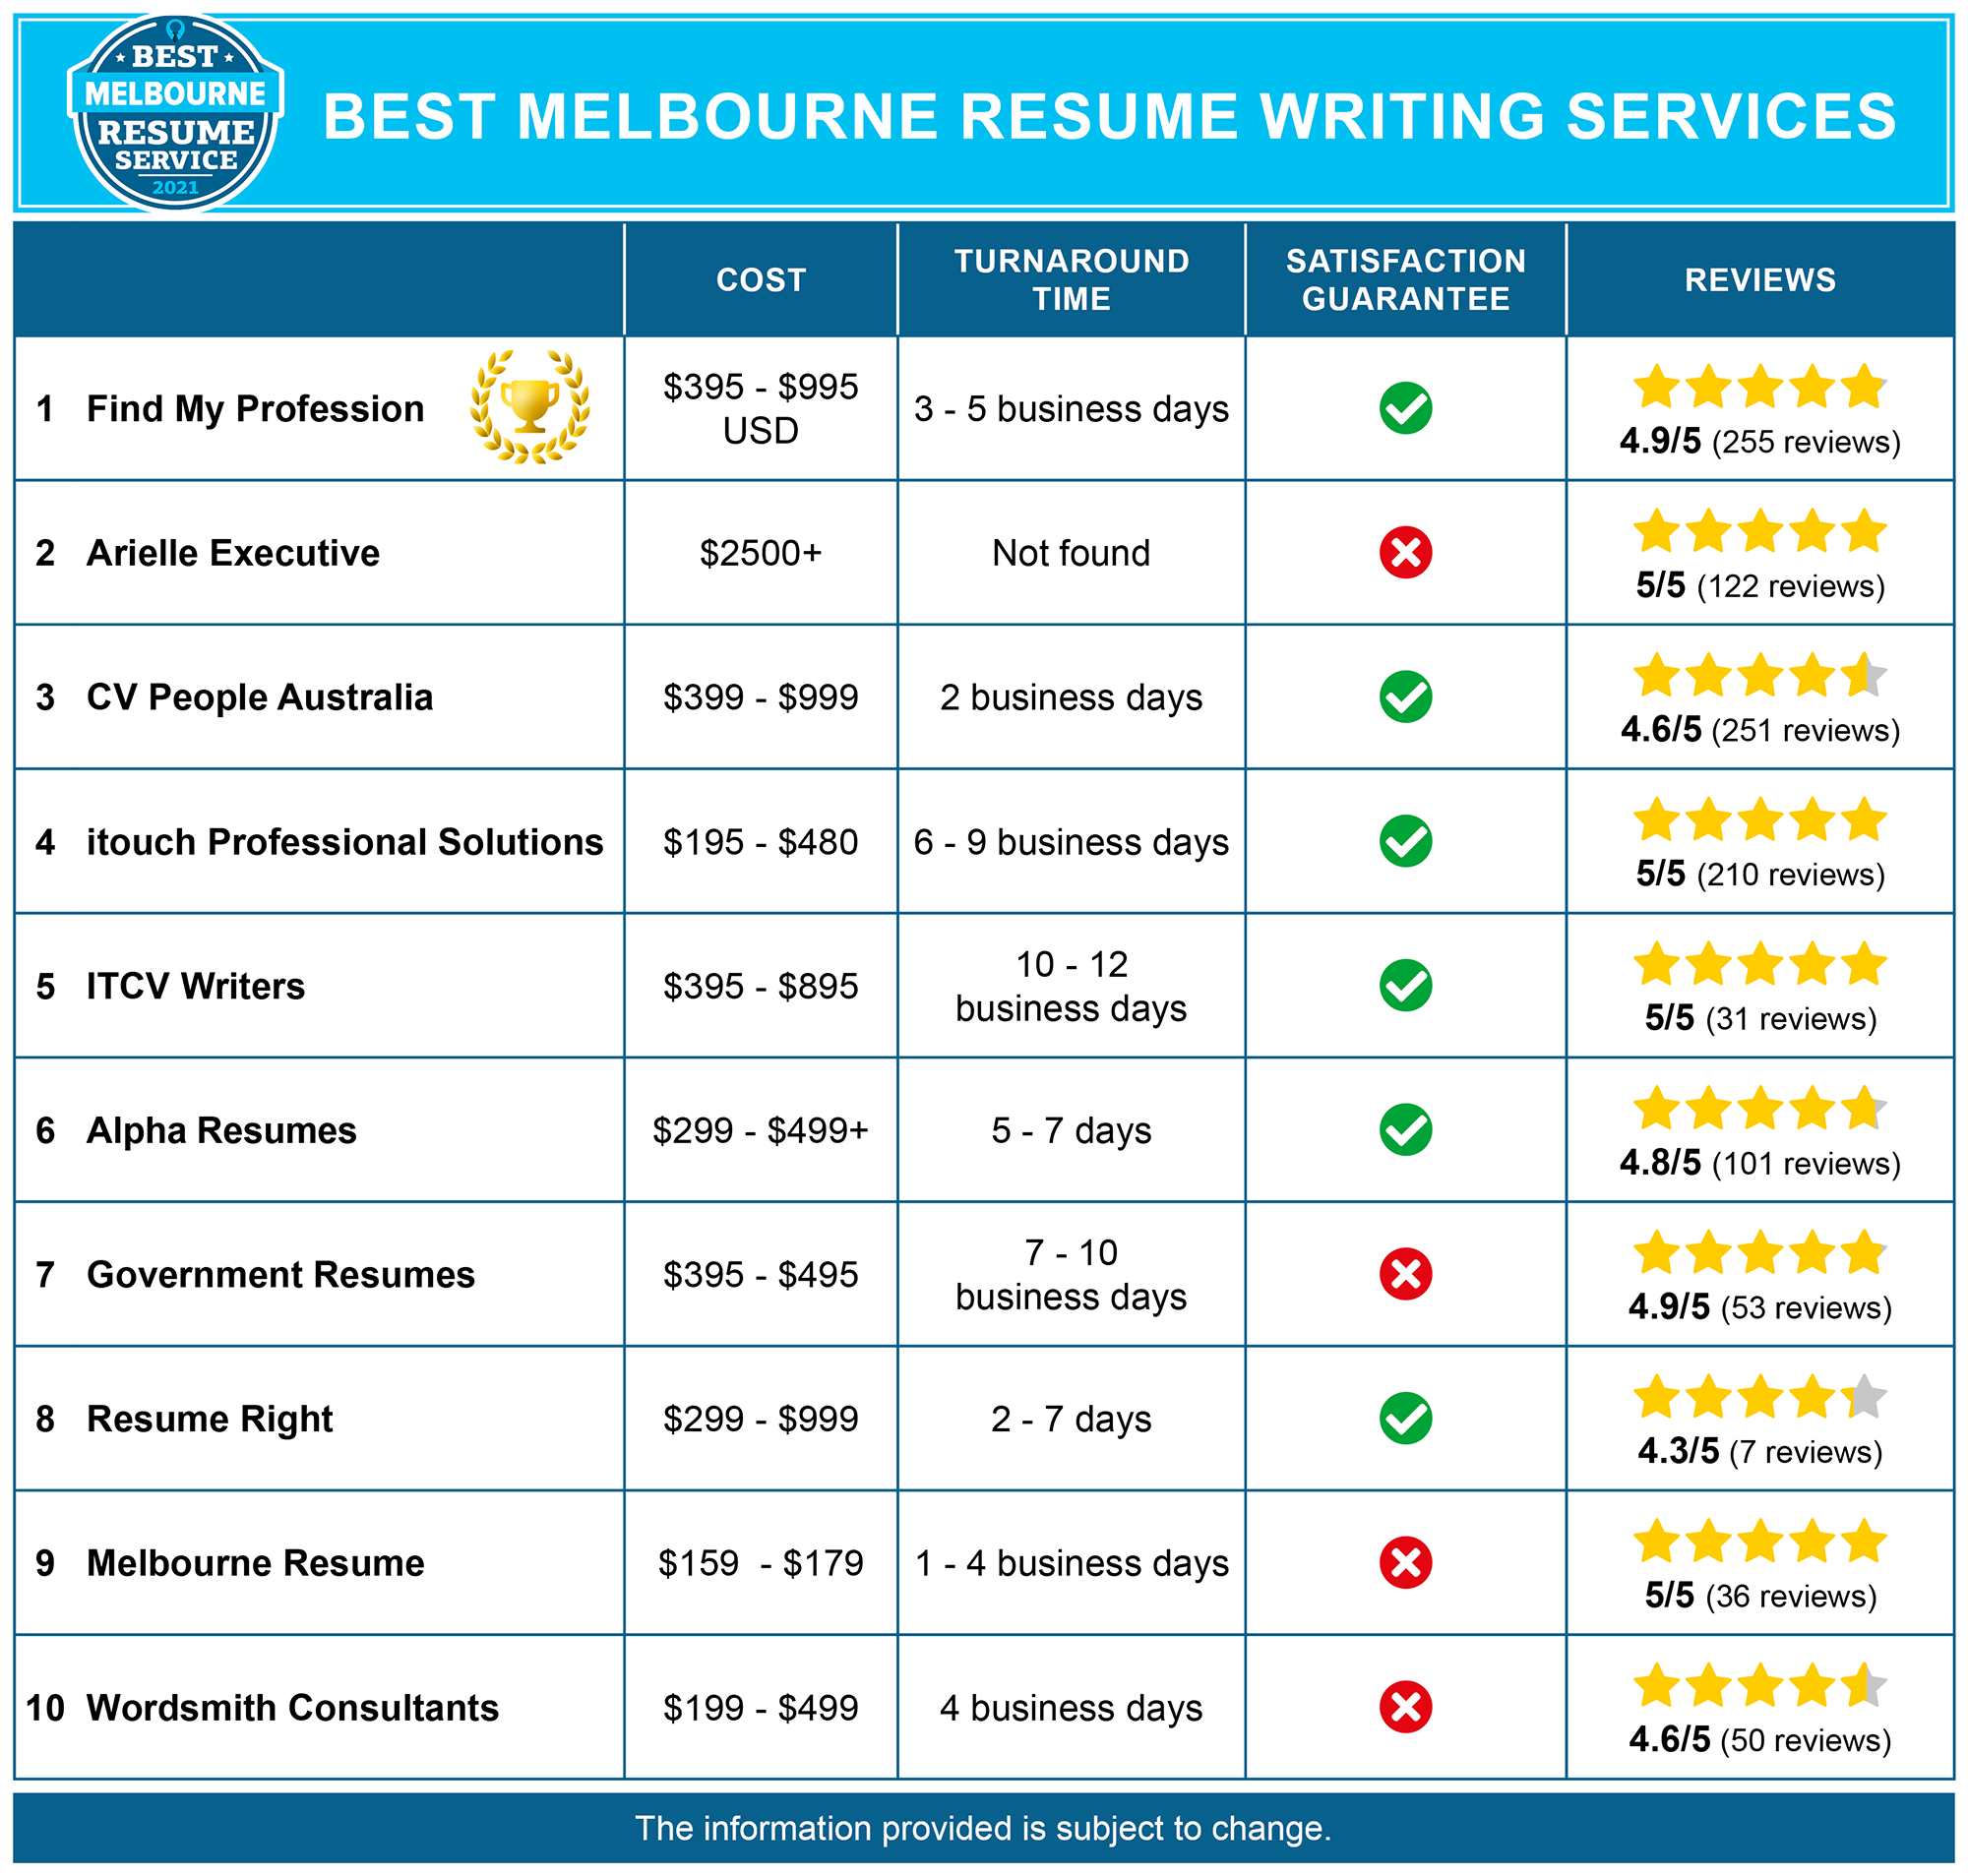 Best Melbourne Resume Services